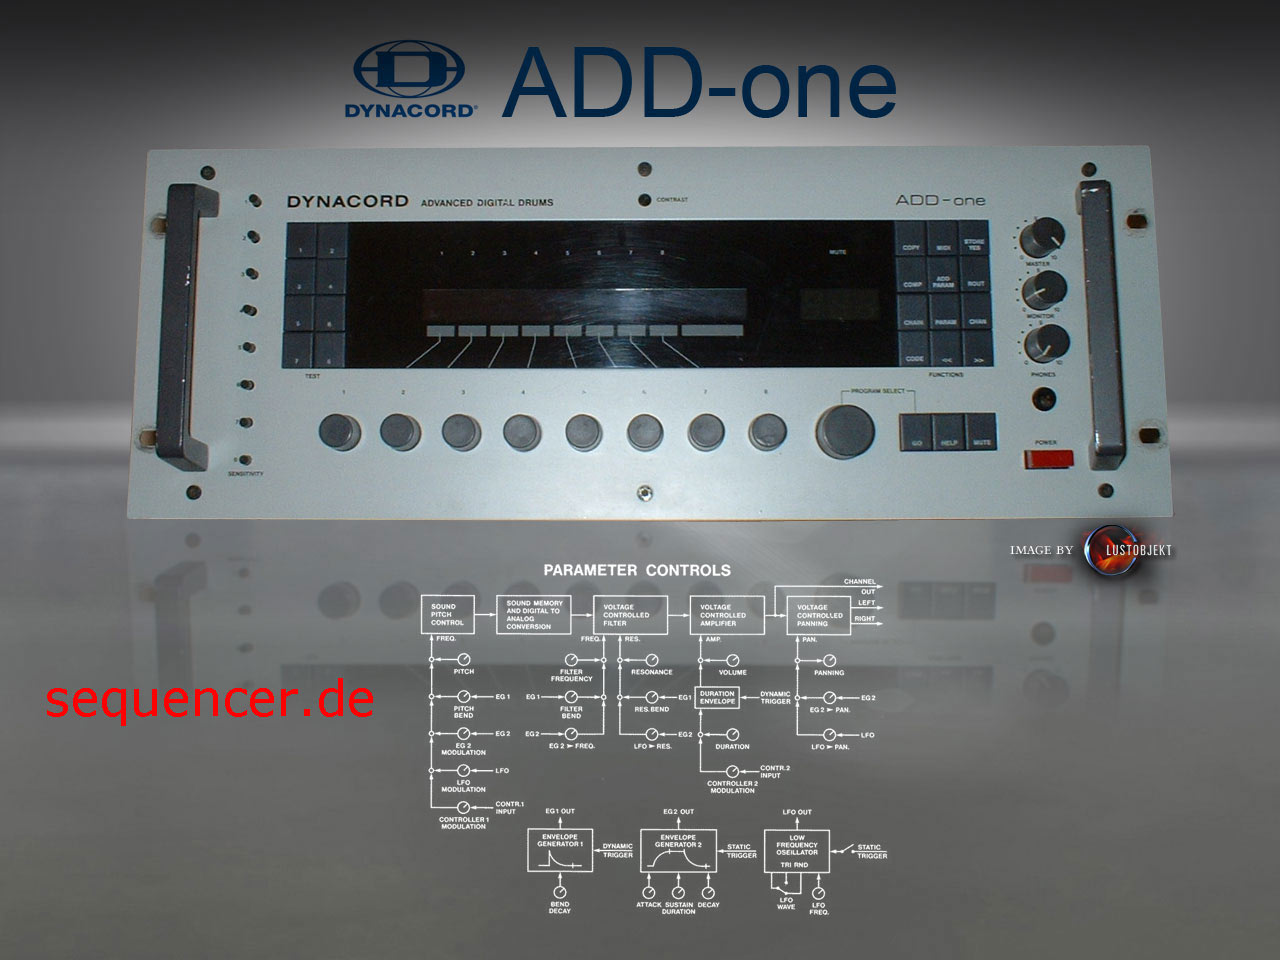 Dynacord AddOne Block Diagramm Dynacord AddOne block diagram synthesizer